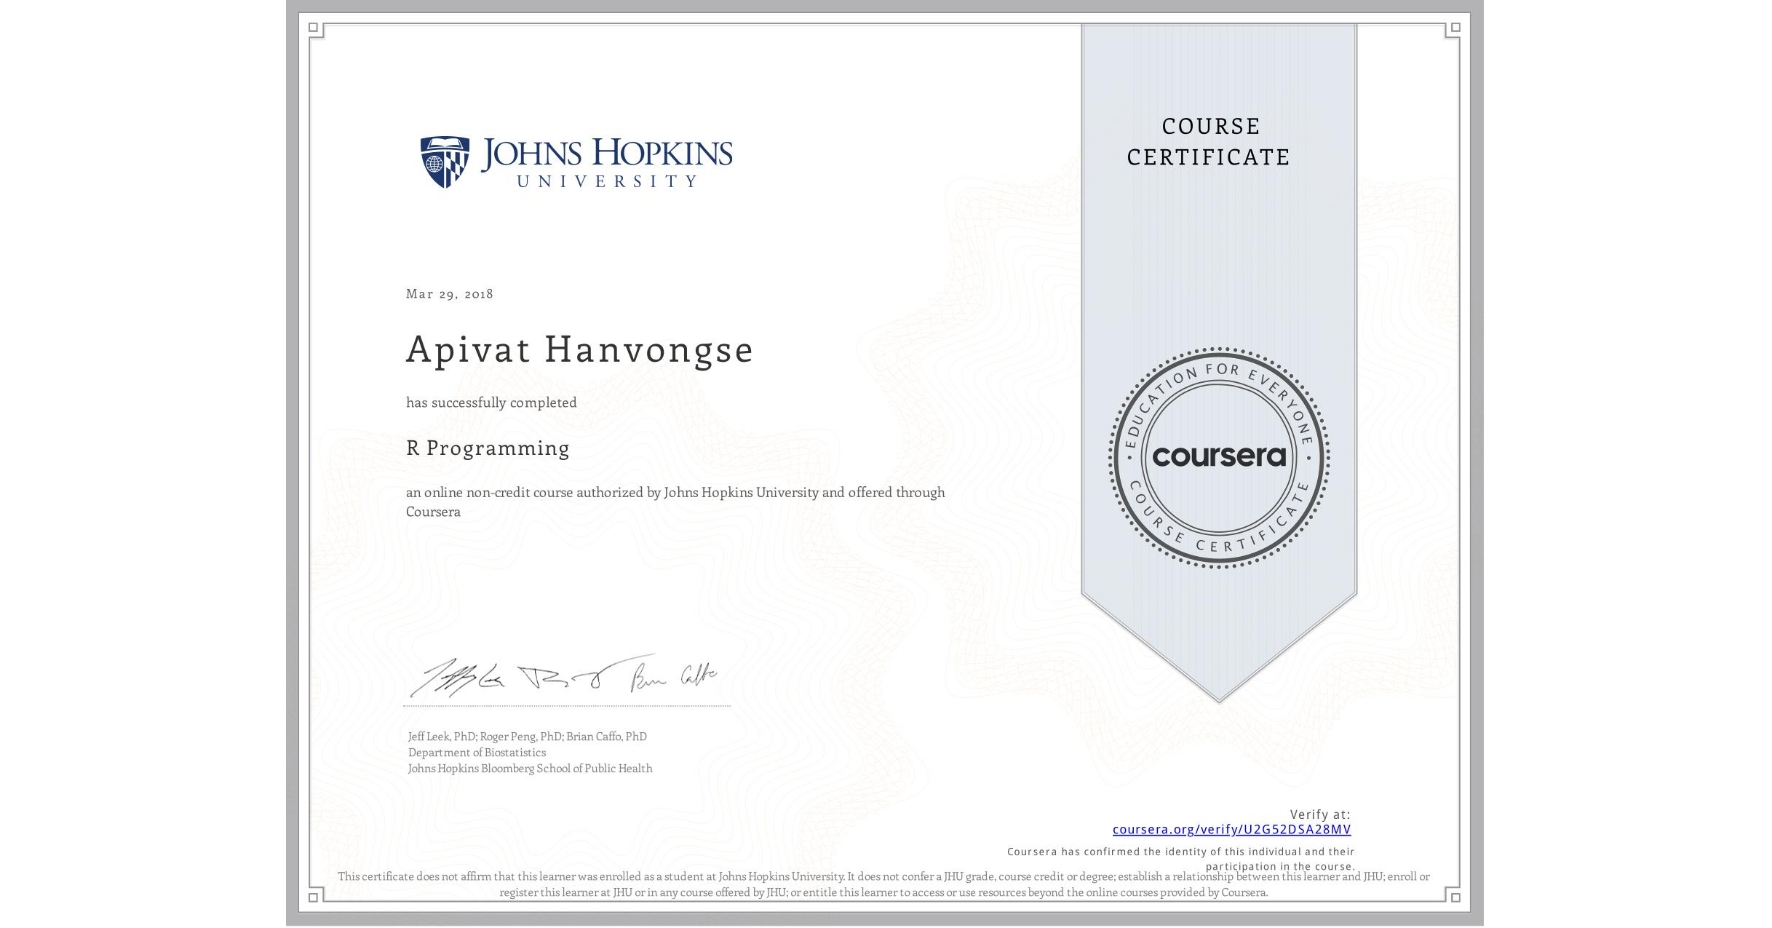 View certificate for Apivat Hanvongse, R Programming, an online non-credit course authorized by Johns Hopkins University and offered through Coursera